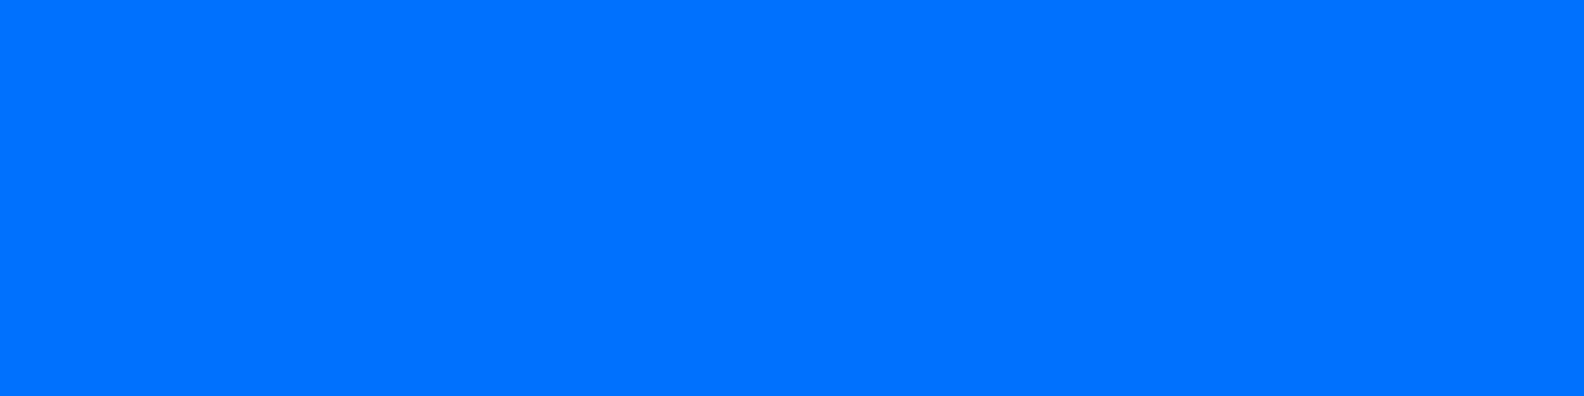 1584x396 Brandeis Blue Solid Color Background